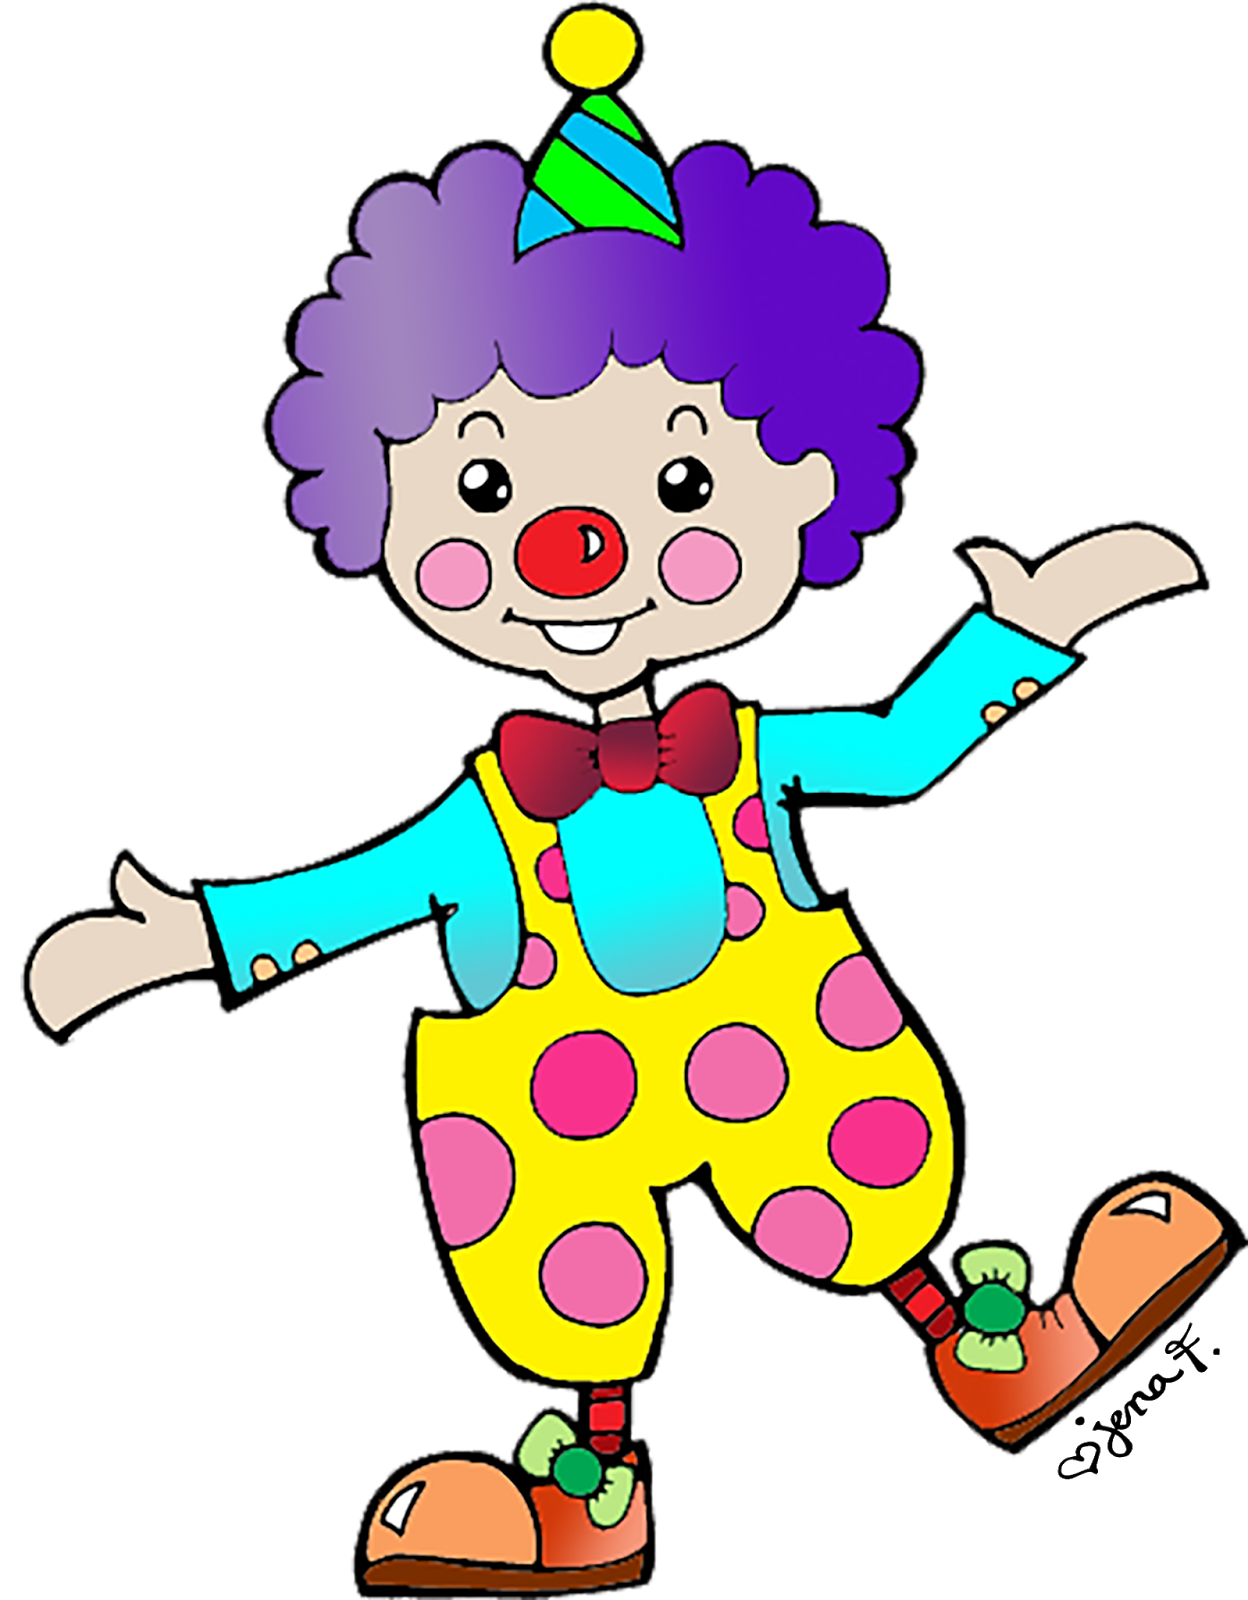 aimless daze clowning around free crown clip art images free crown clip art images